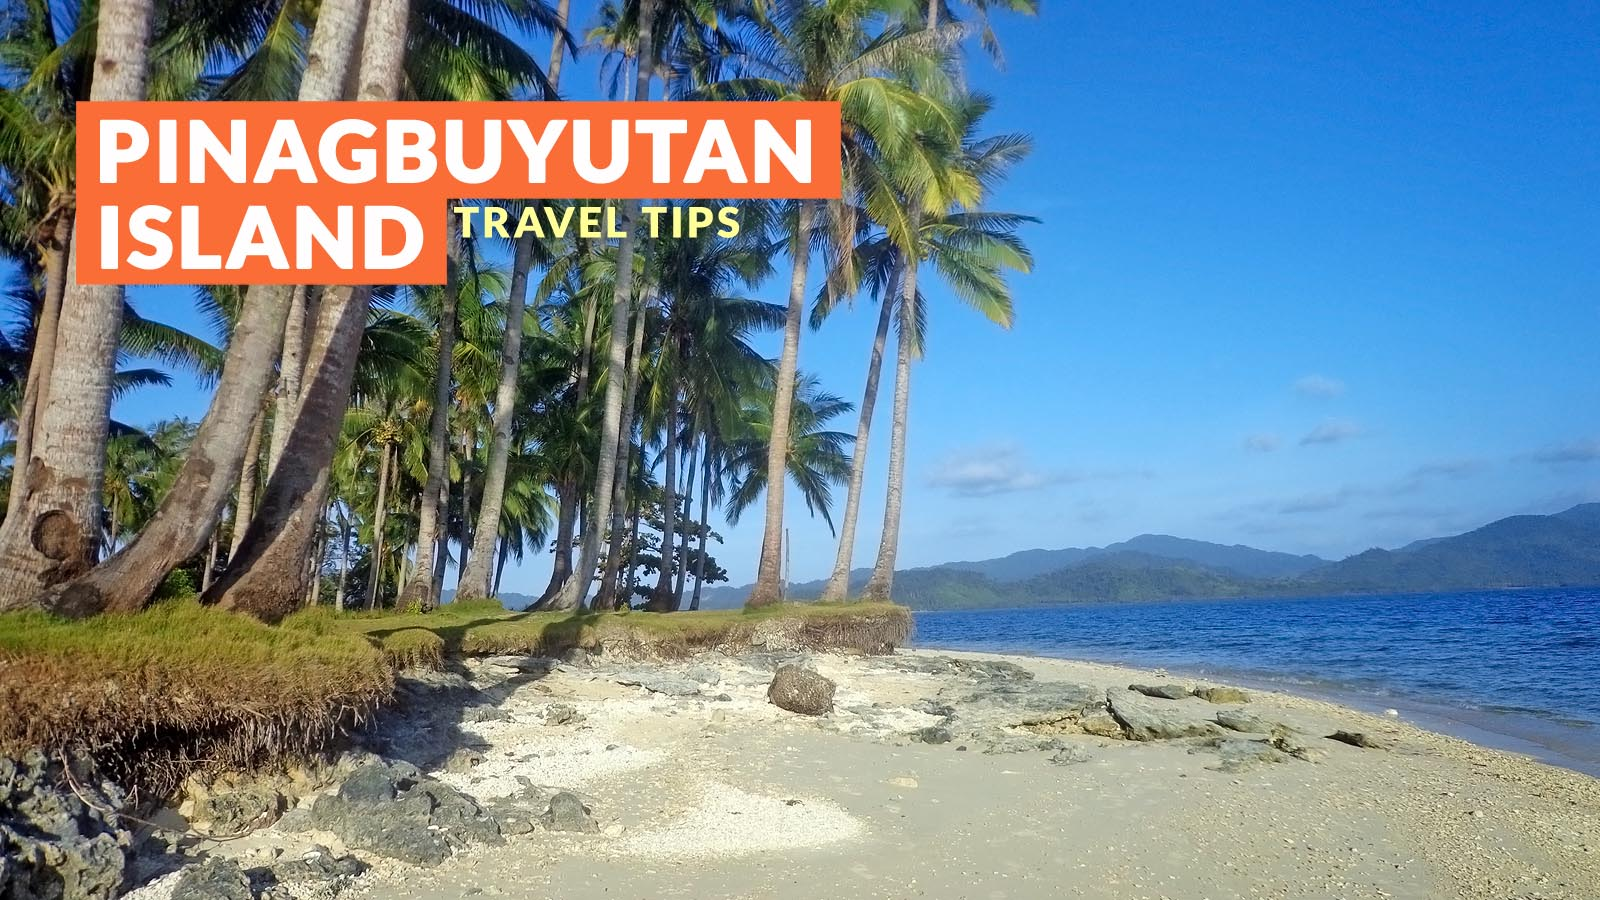 Pinagbuyutan Island El Nido Important Travel Tips